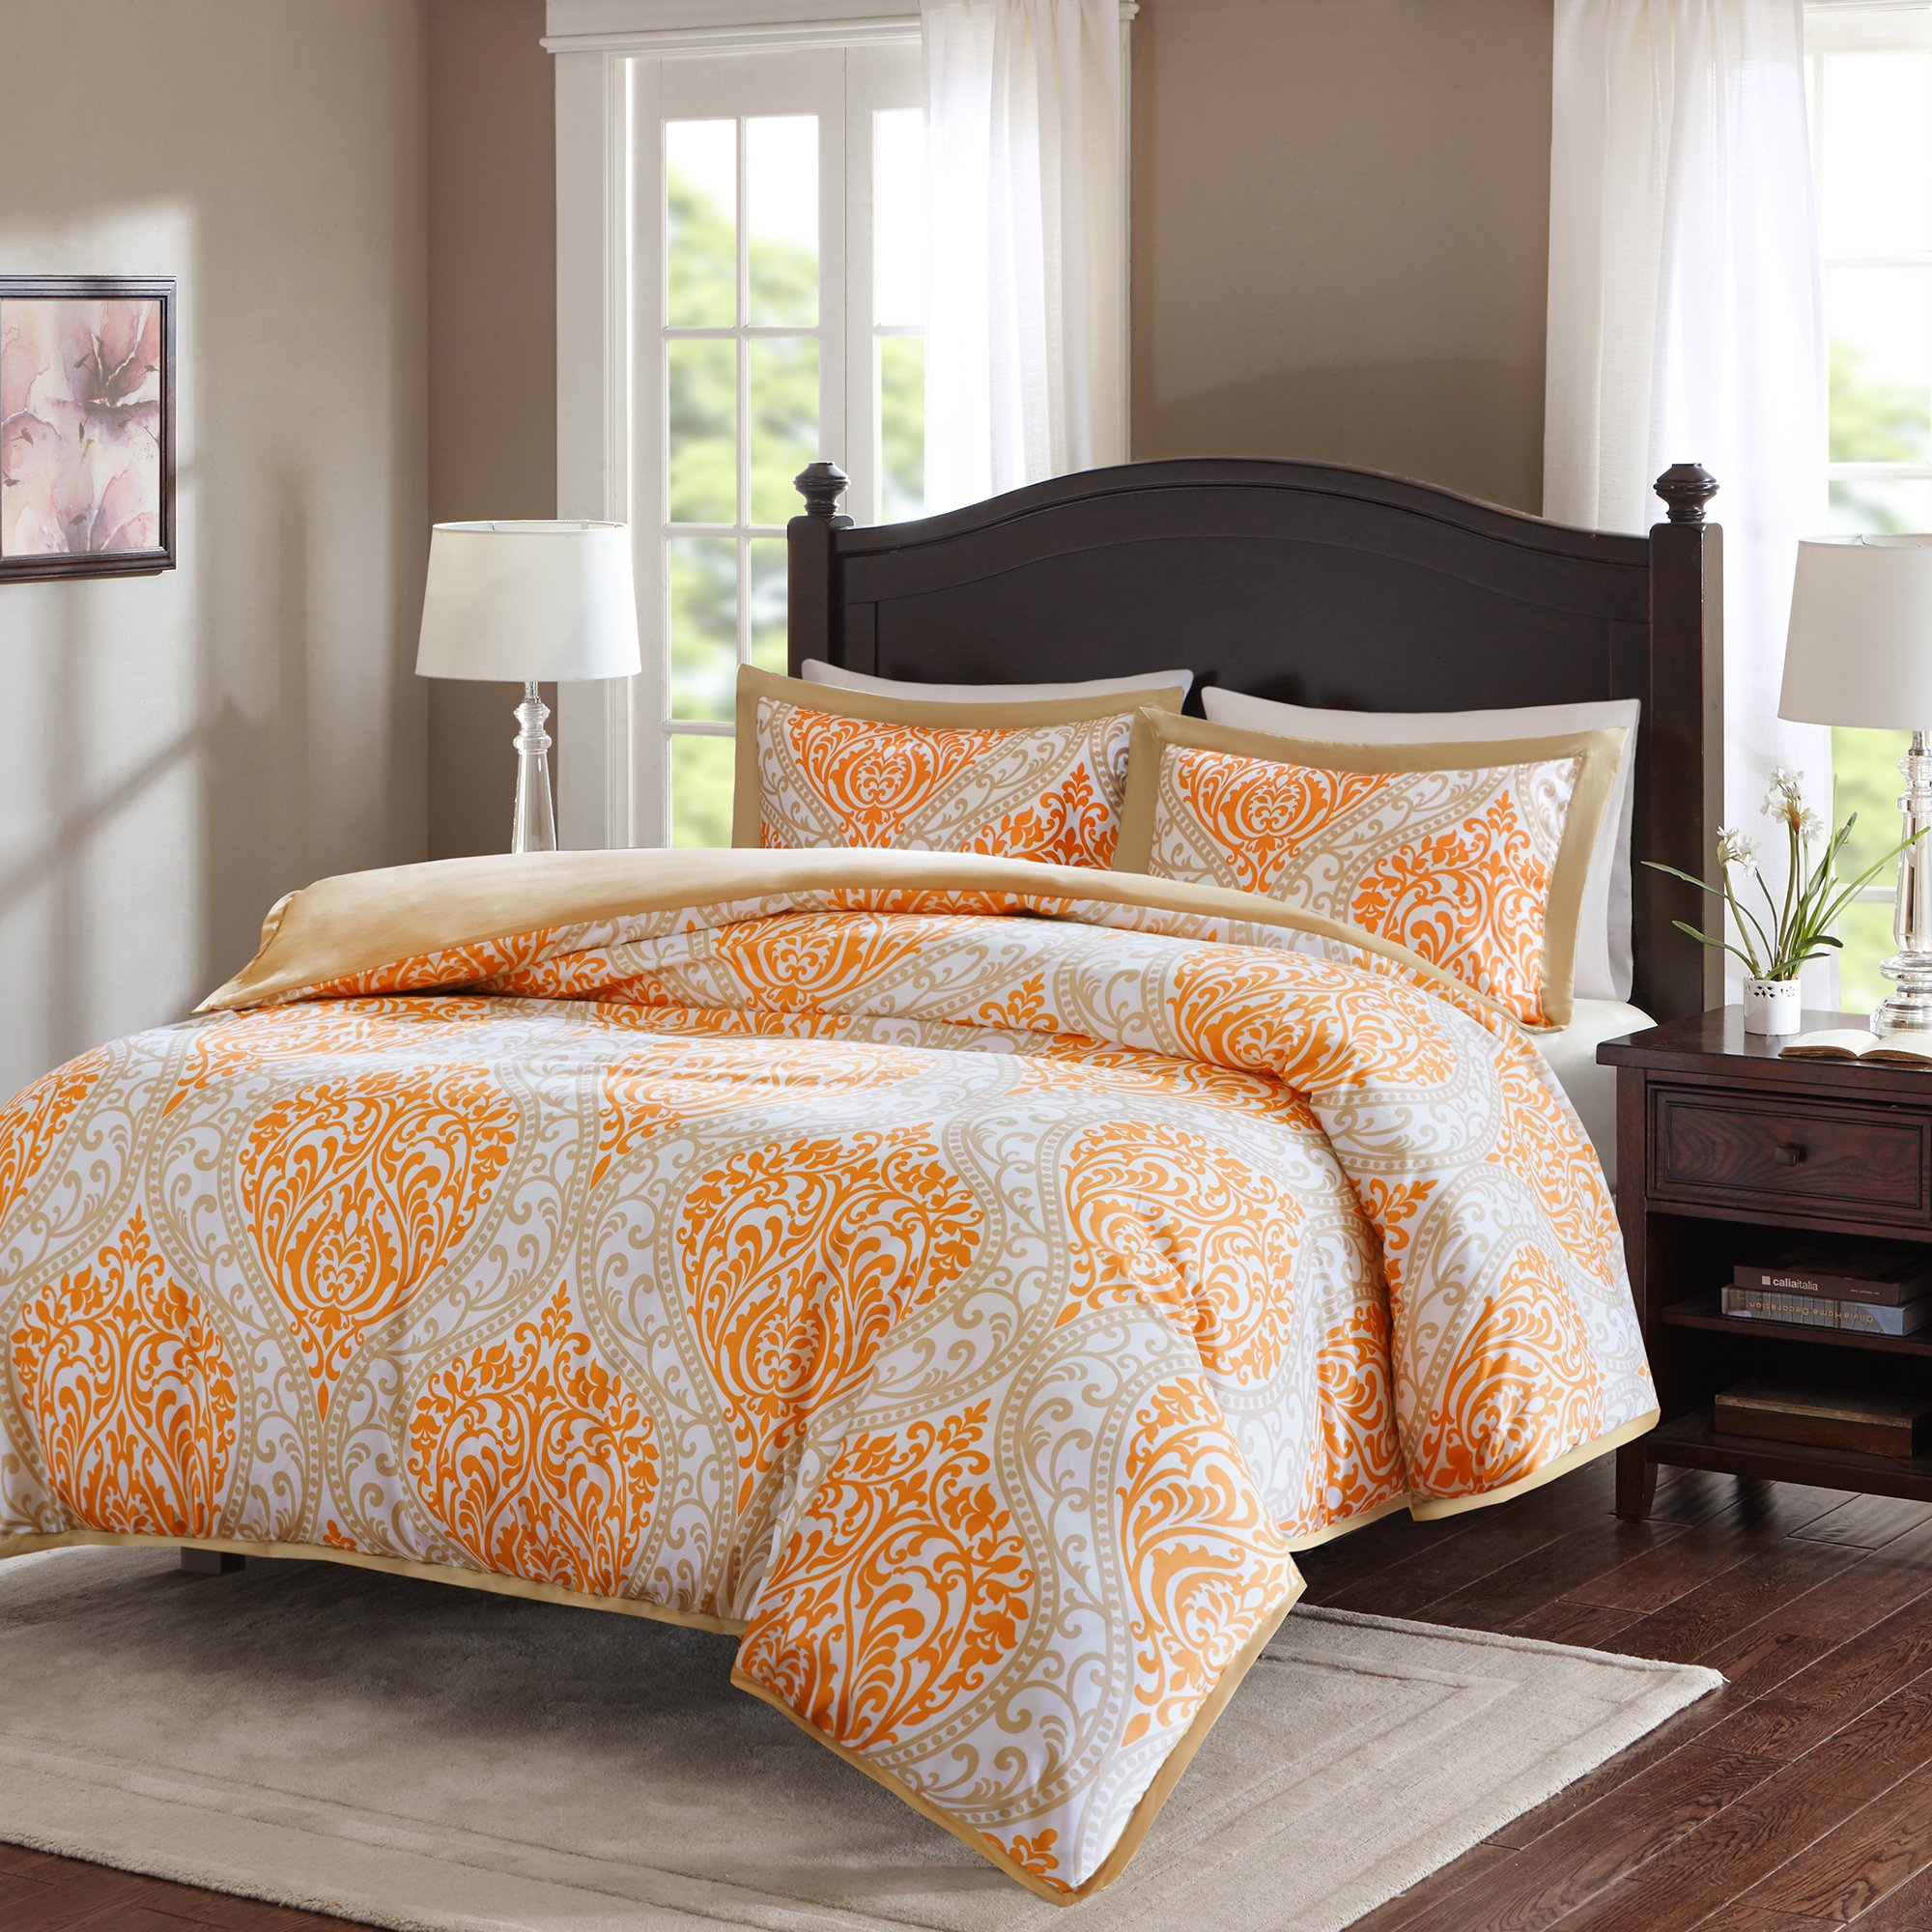 Duvet Cover Full/Queen Size - Coco Teen Girls Bedding Set With Corner Ties - 3 Pieces [ 1 Duvet Cover, 2 Shams ] Orange and Taupe Duvet Bed Sets With Damask Pattern